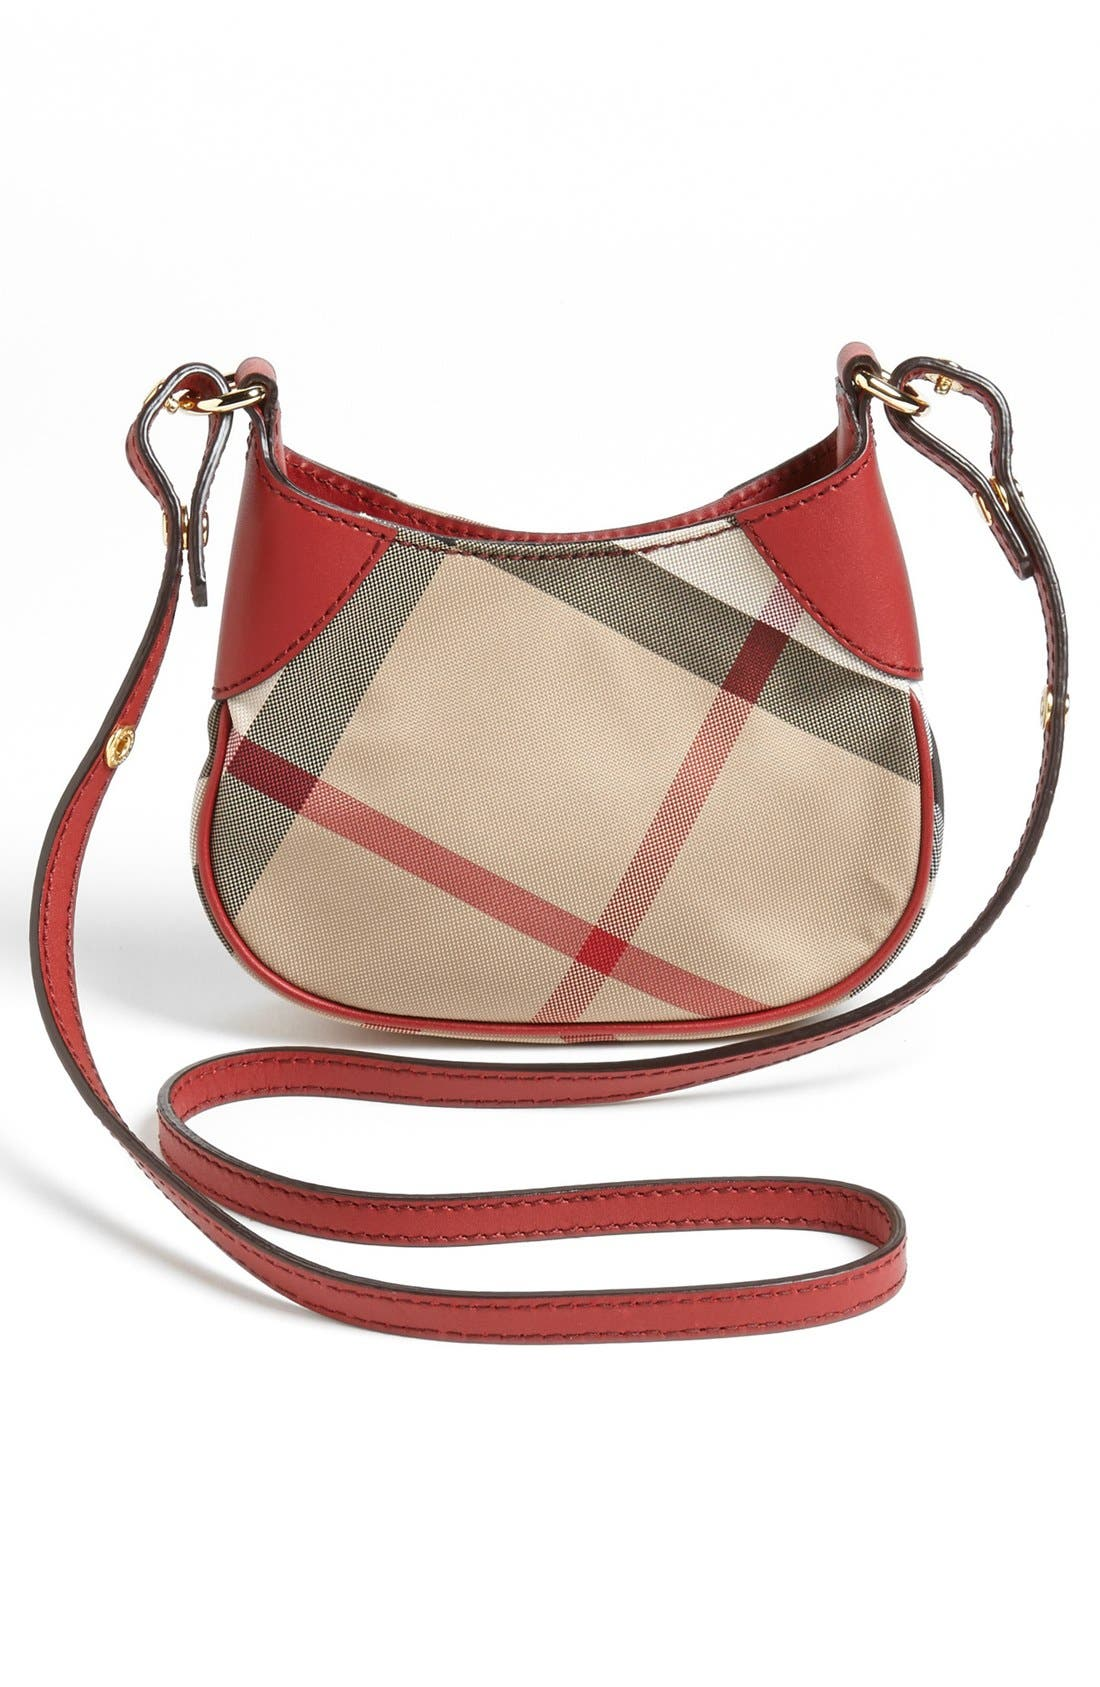 BURBERRY,                             Crossbody Bag,                             Alternate thumbnail 4, color,                             609